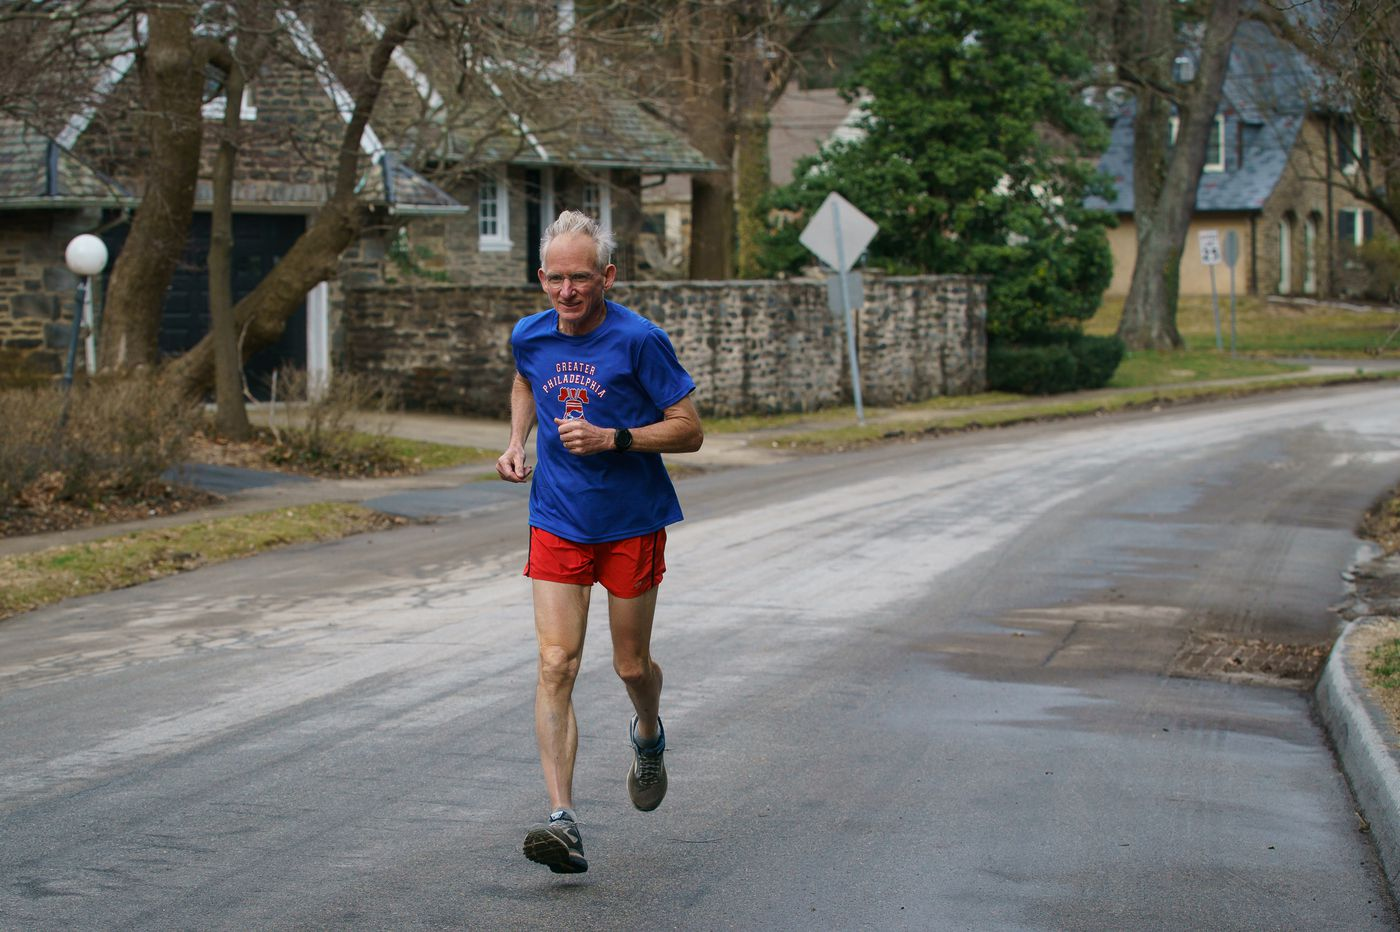 Gene Dykes, the 'Ultrageezer,' breaks own record at Boston Marathon